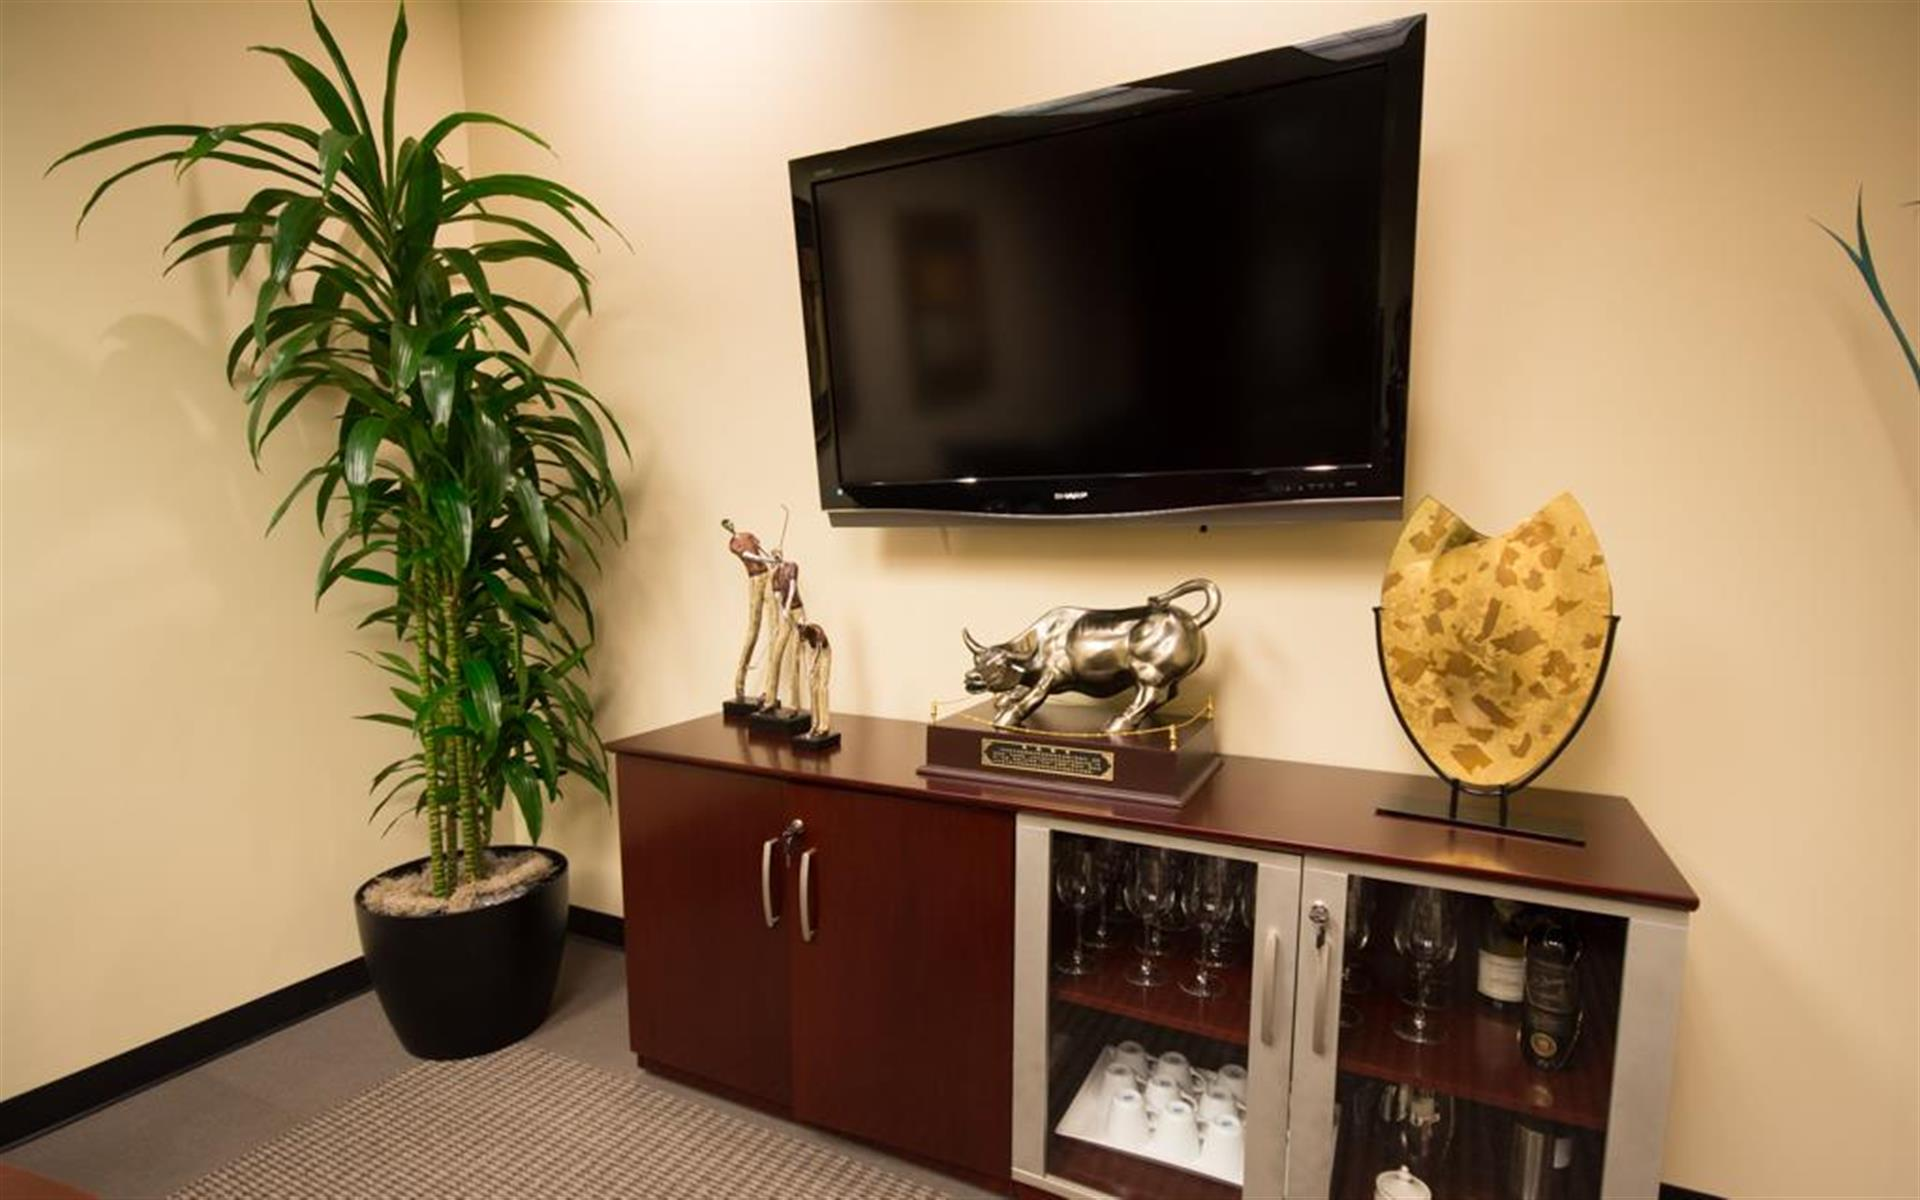 Sierra Pacific Fin. Advisors, LLC - Conference Room